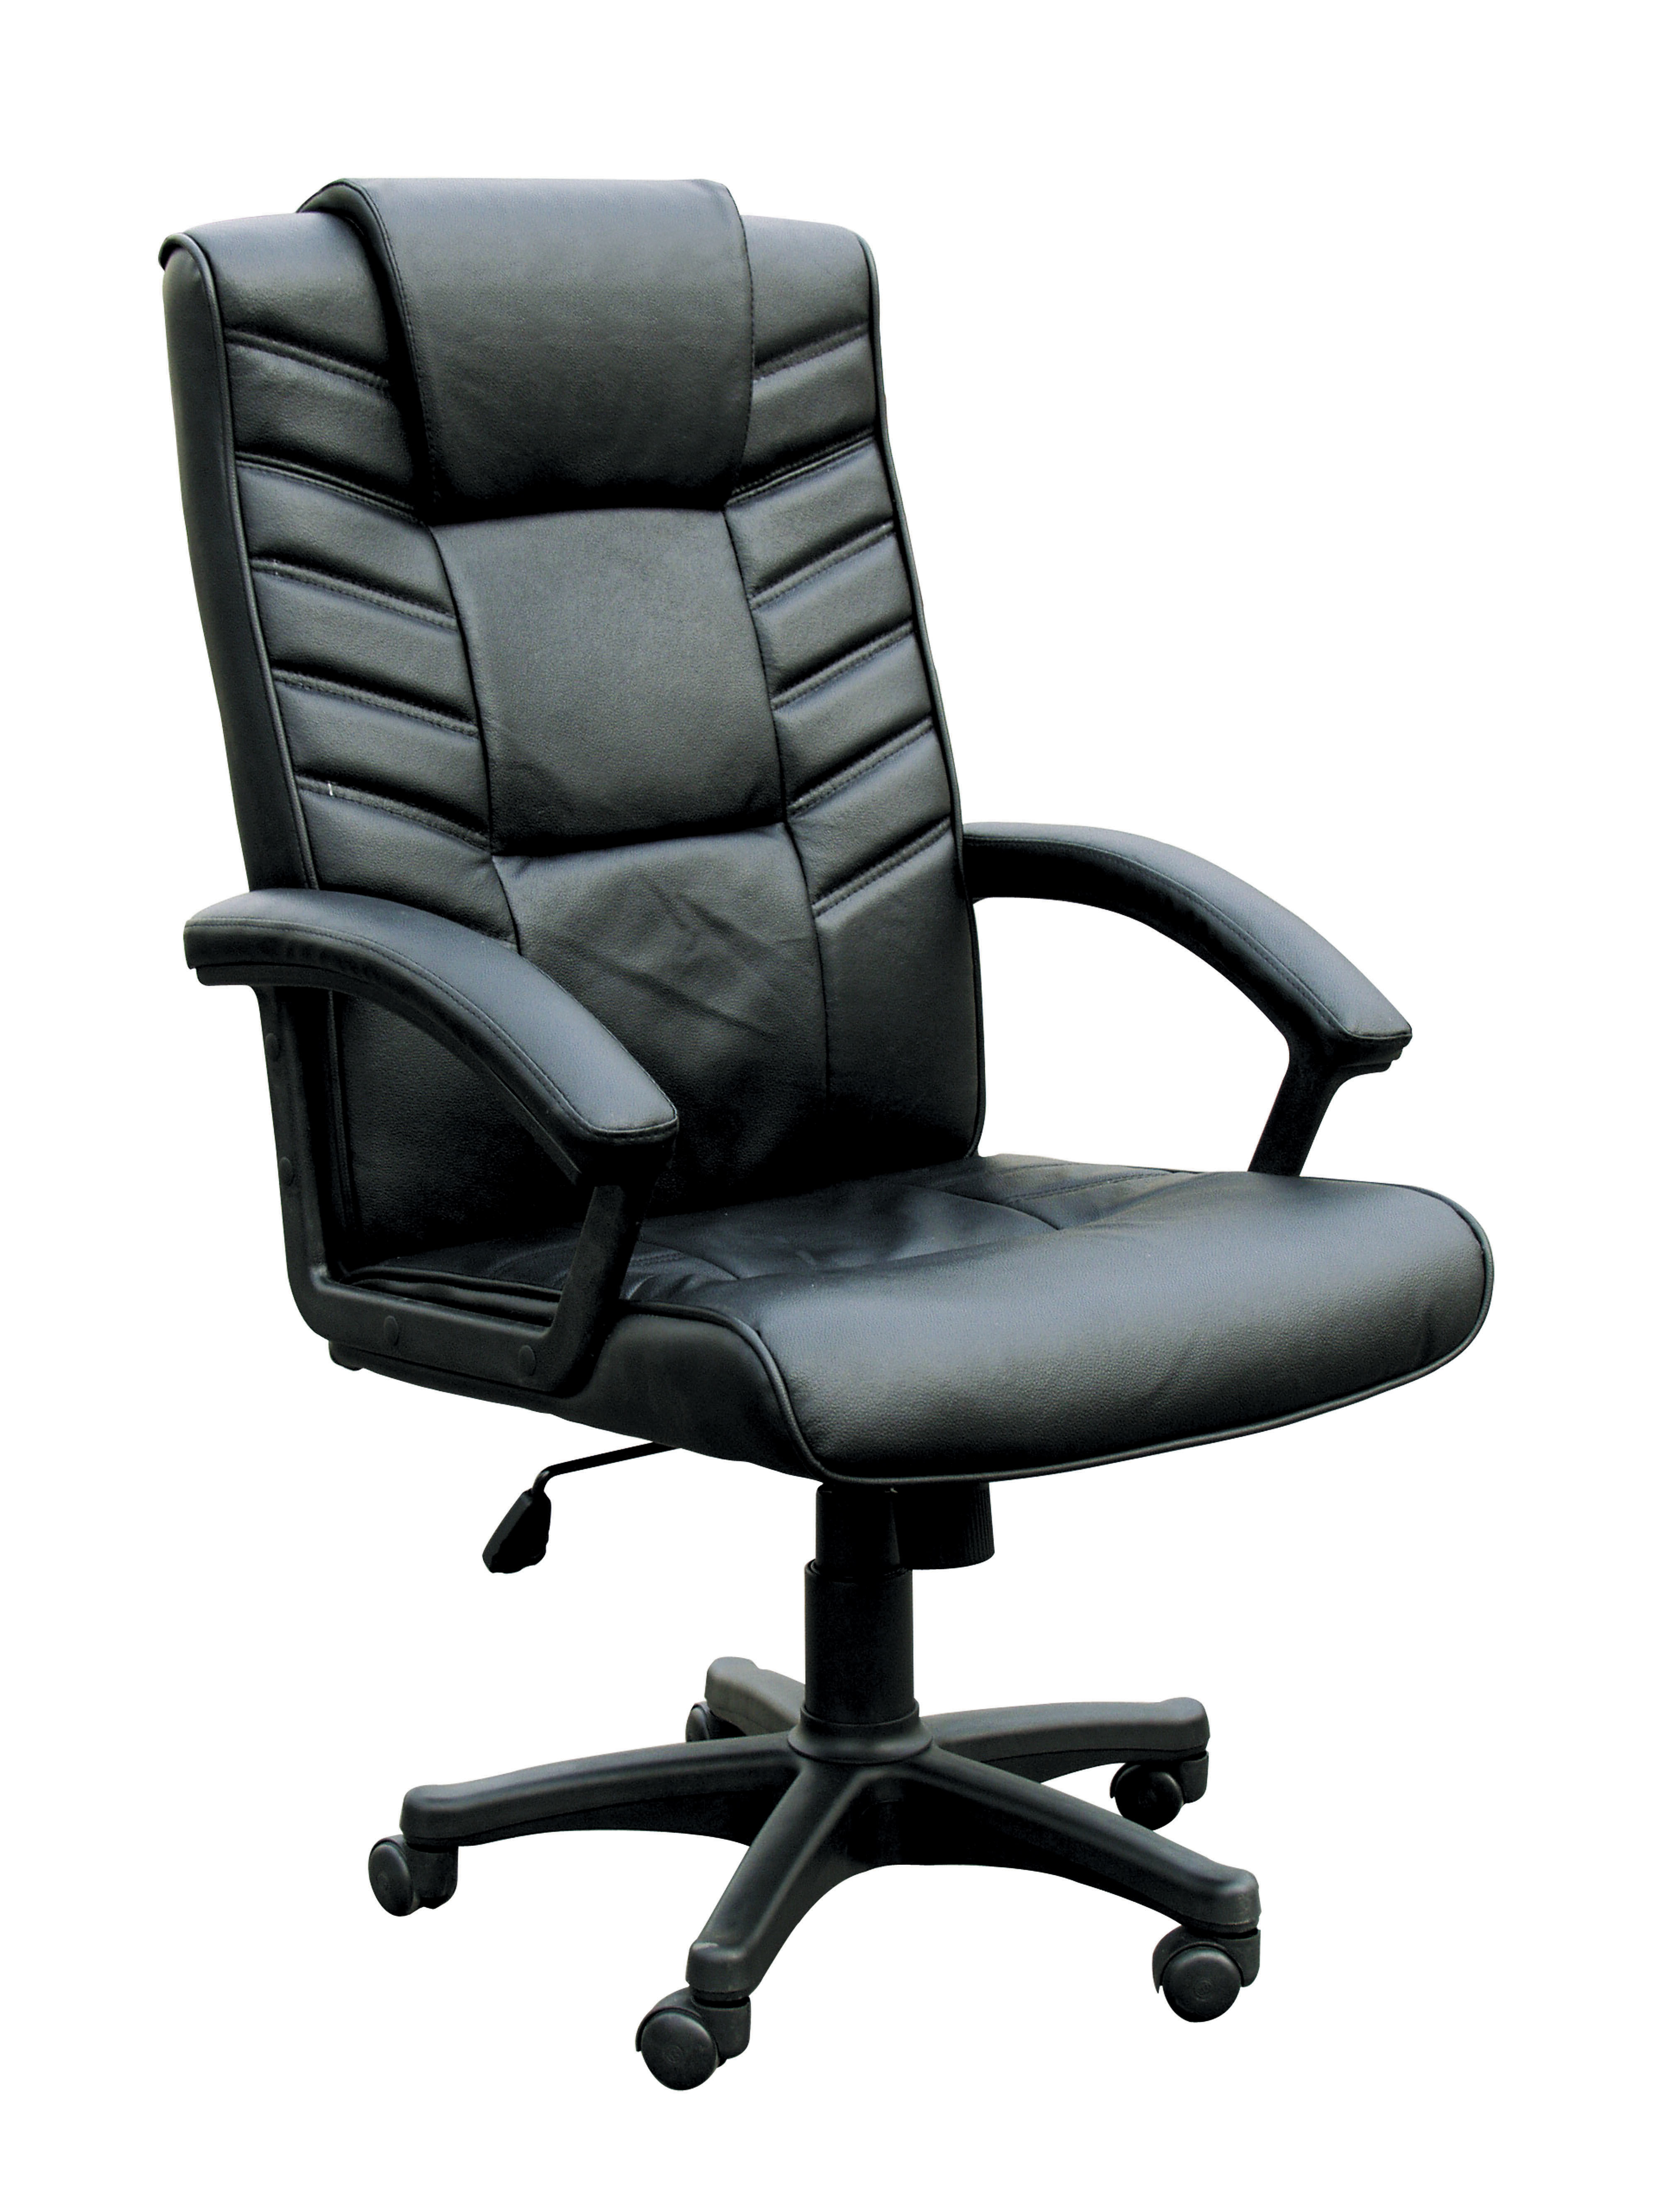 Chesterfield Office Chair With Pneumatic Lift, Black Bonded Leather